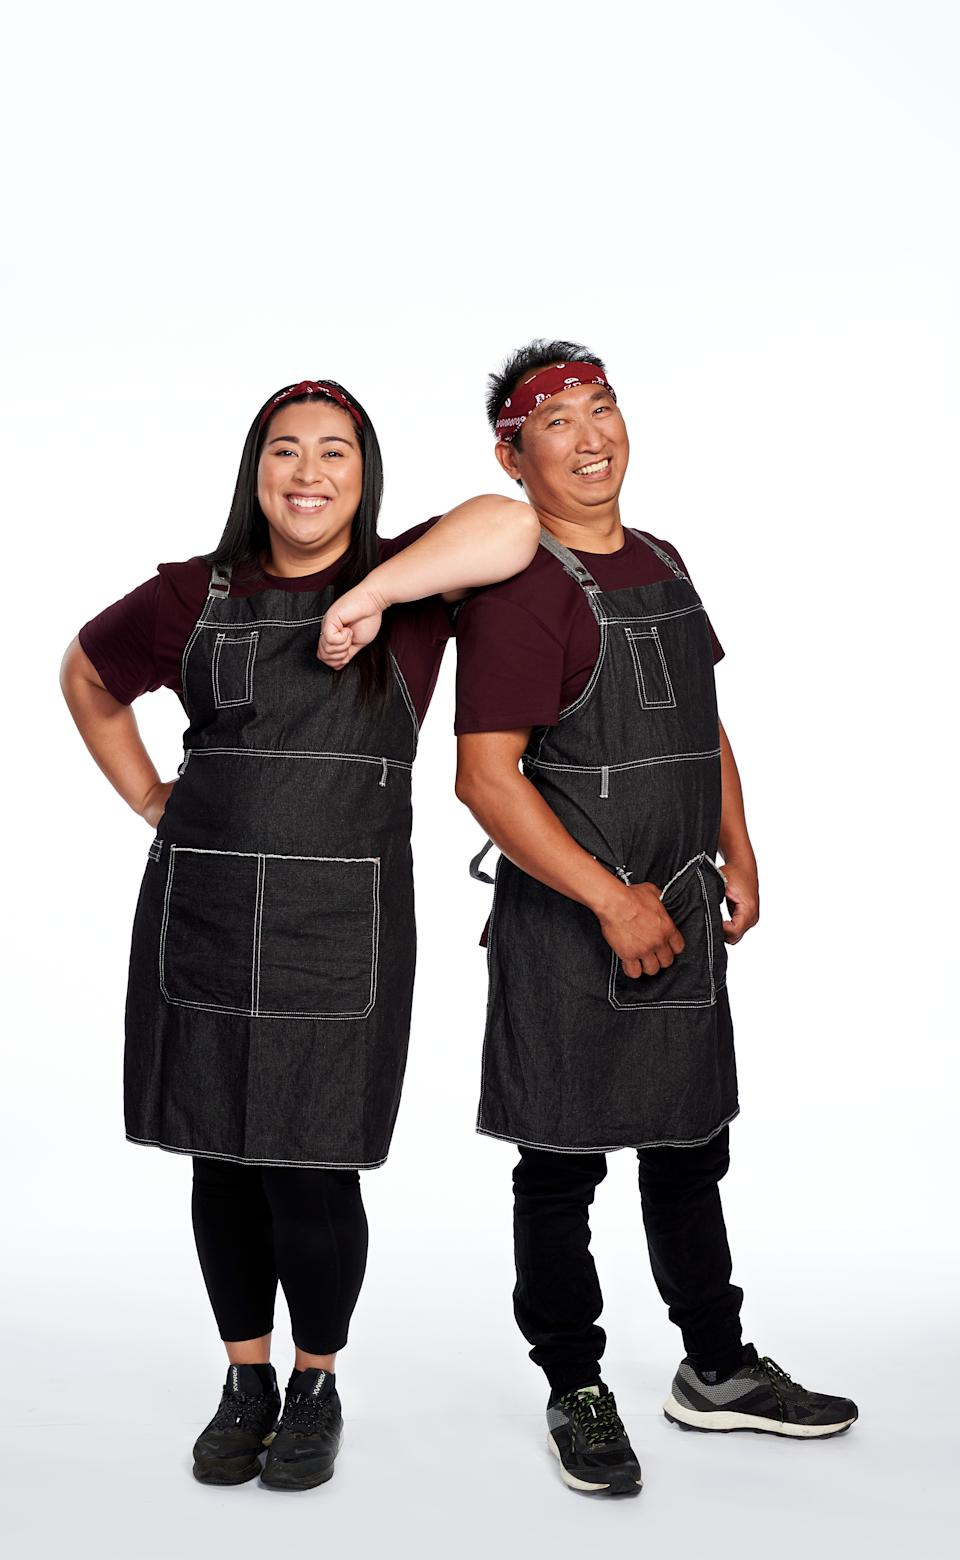 The Amazing Race Australia 2021 contestants Jobelle and Rani, VIC. Photo: Channel 10 (supplied).